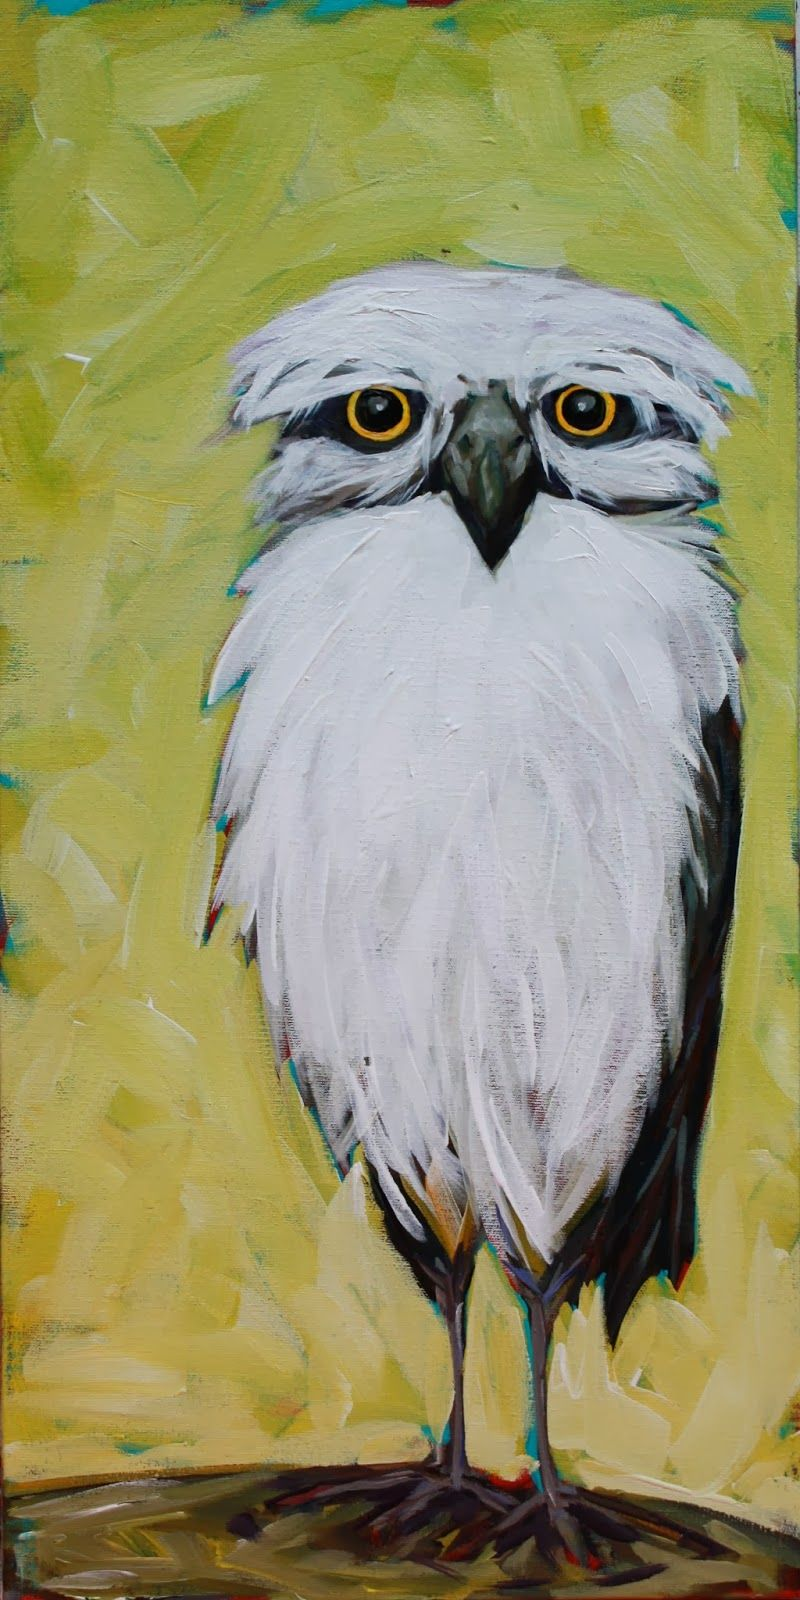 Ned the Owl, 24 x 12 Acrylic on raised canvas by Kandice Keith www.kandicekeith.ca